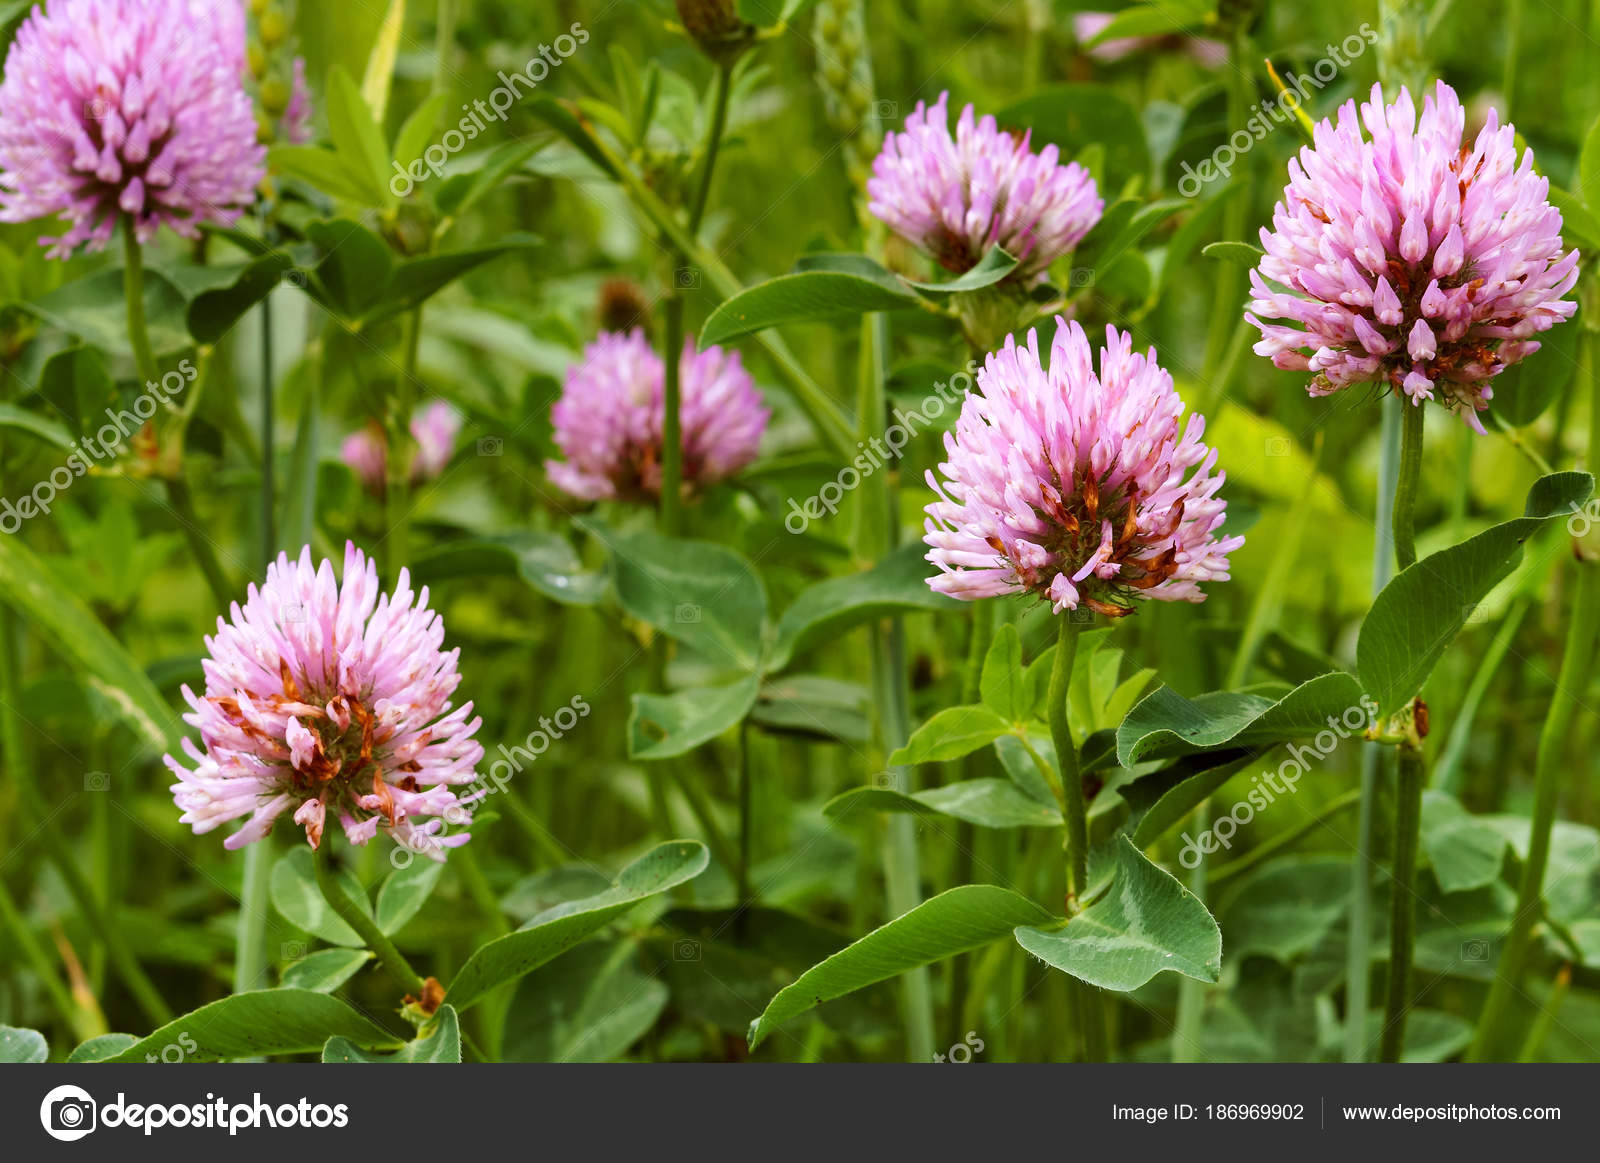 Clover Wild Flower Pink Clover Summer Flowering Plant Stock Photo